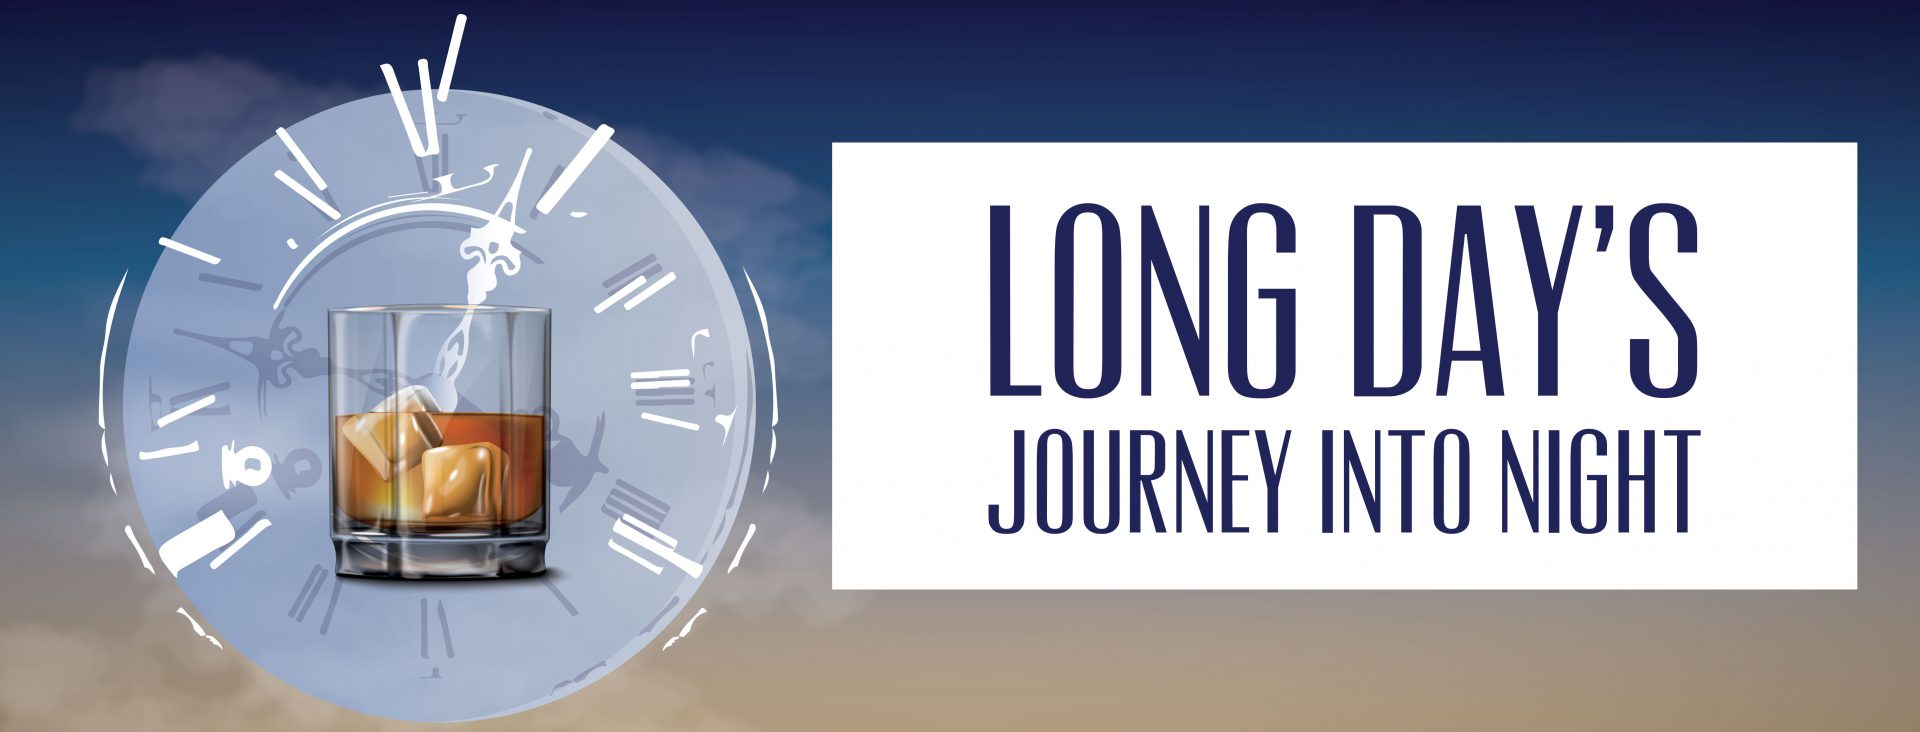 long days journey poster.jpg